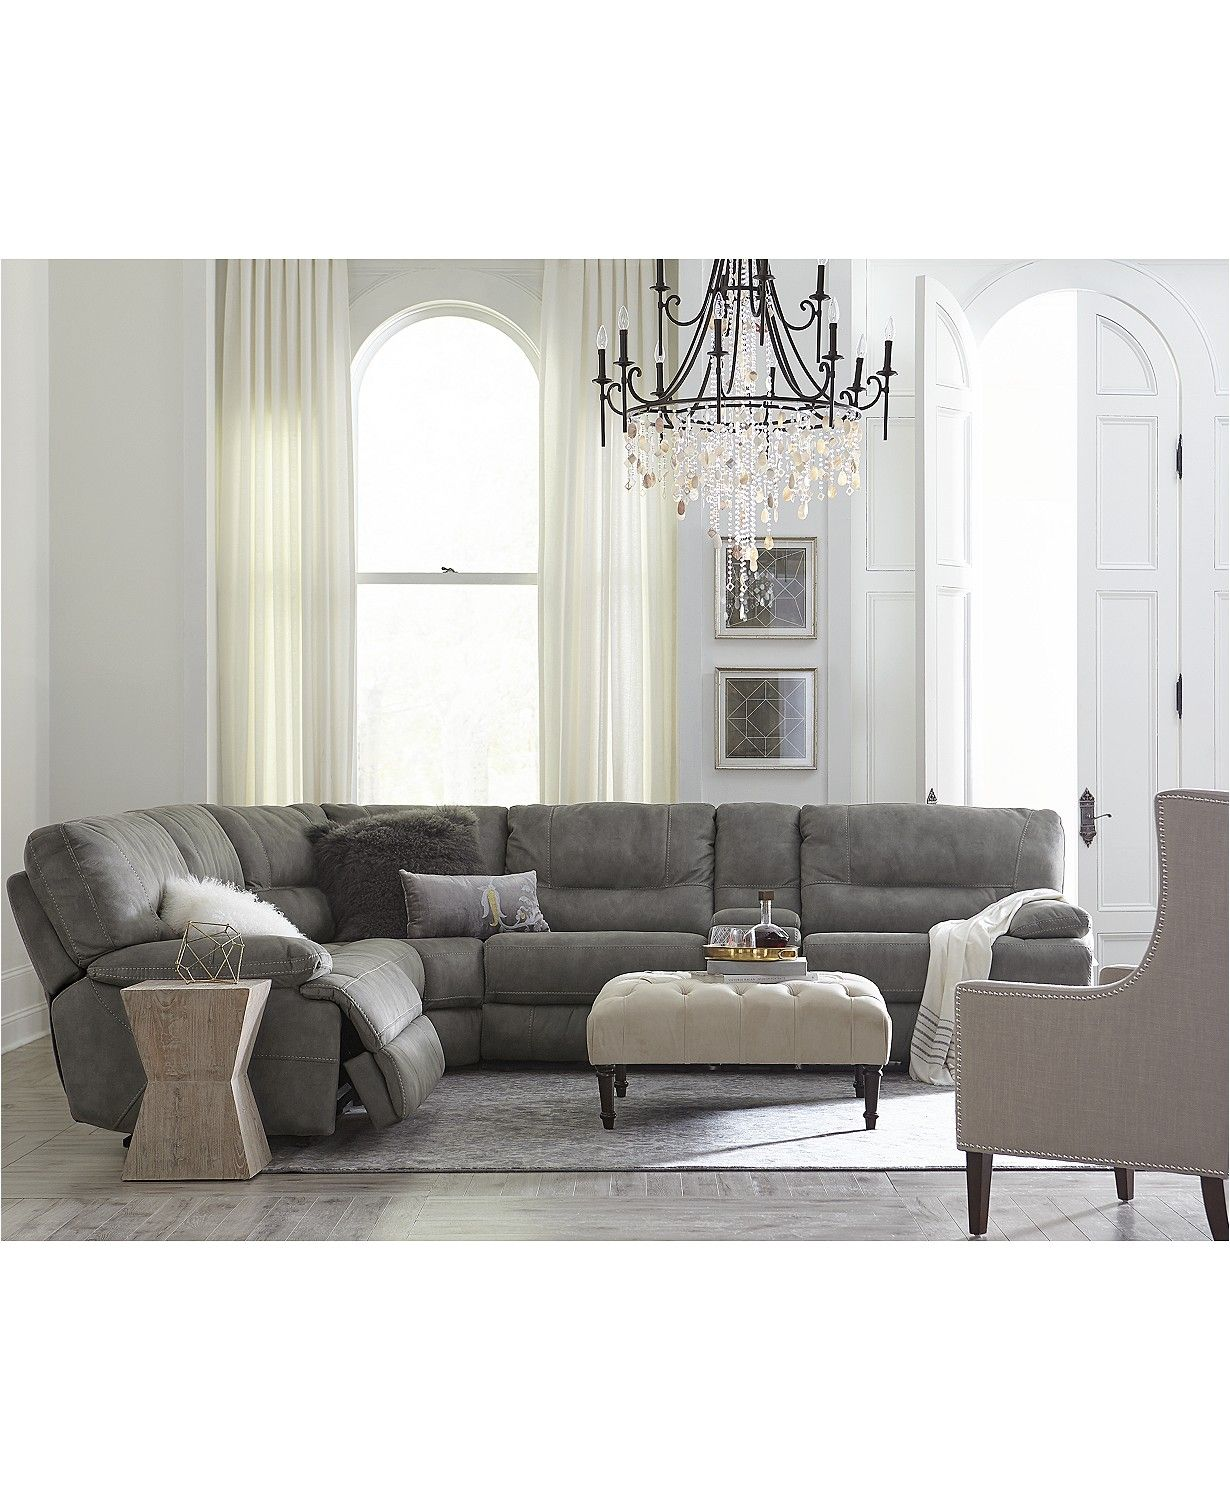 closeout living room furniture complete set liam fabric power reclining sectional sofa collection decor created for macy s